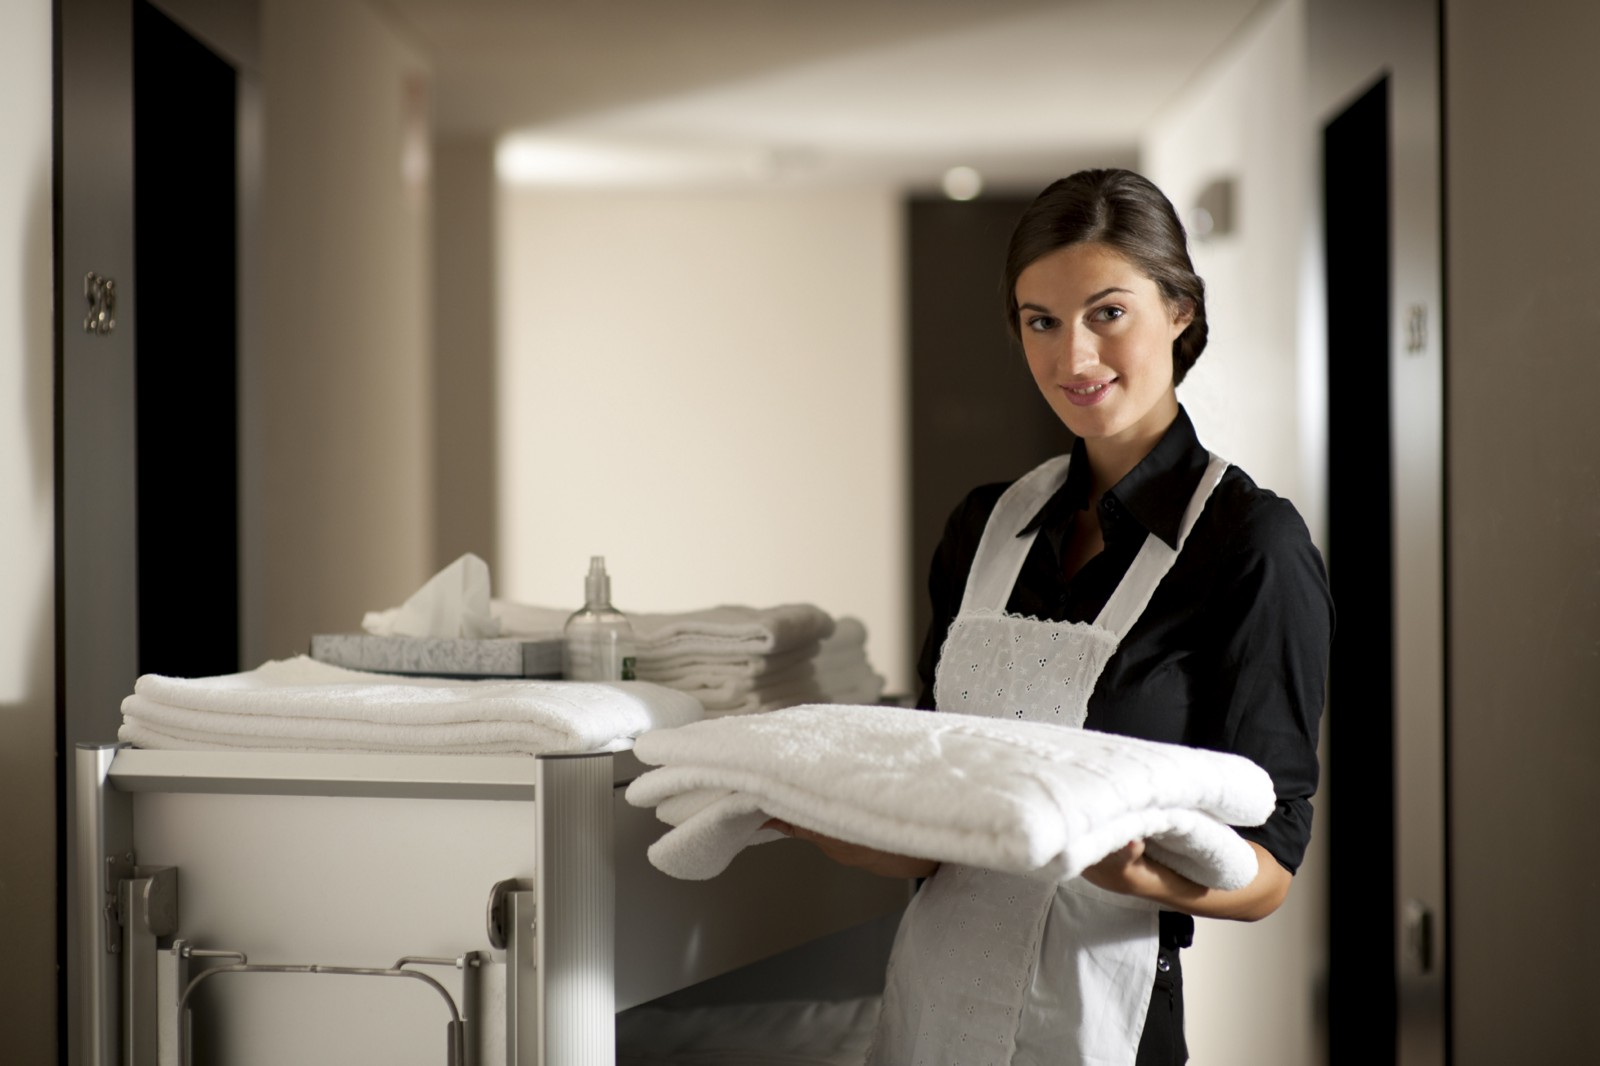 5 best housekeeping practices to attract repeat visits